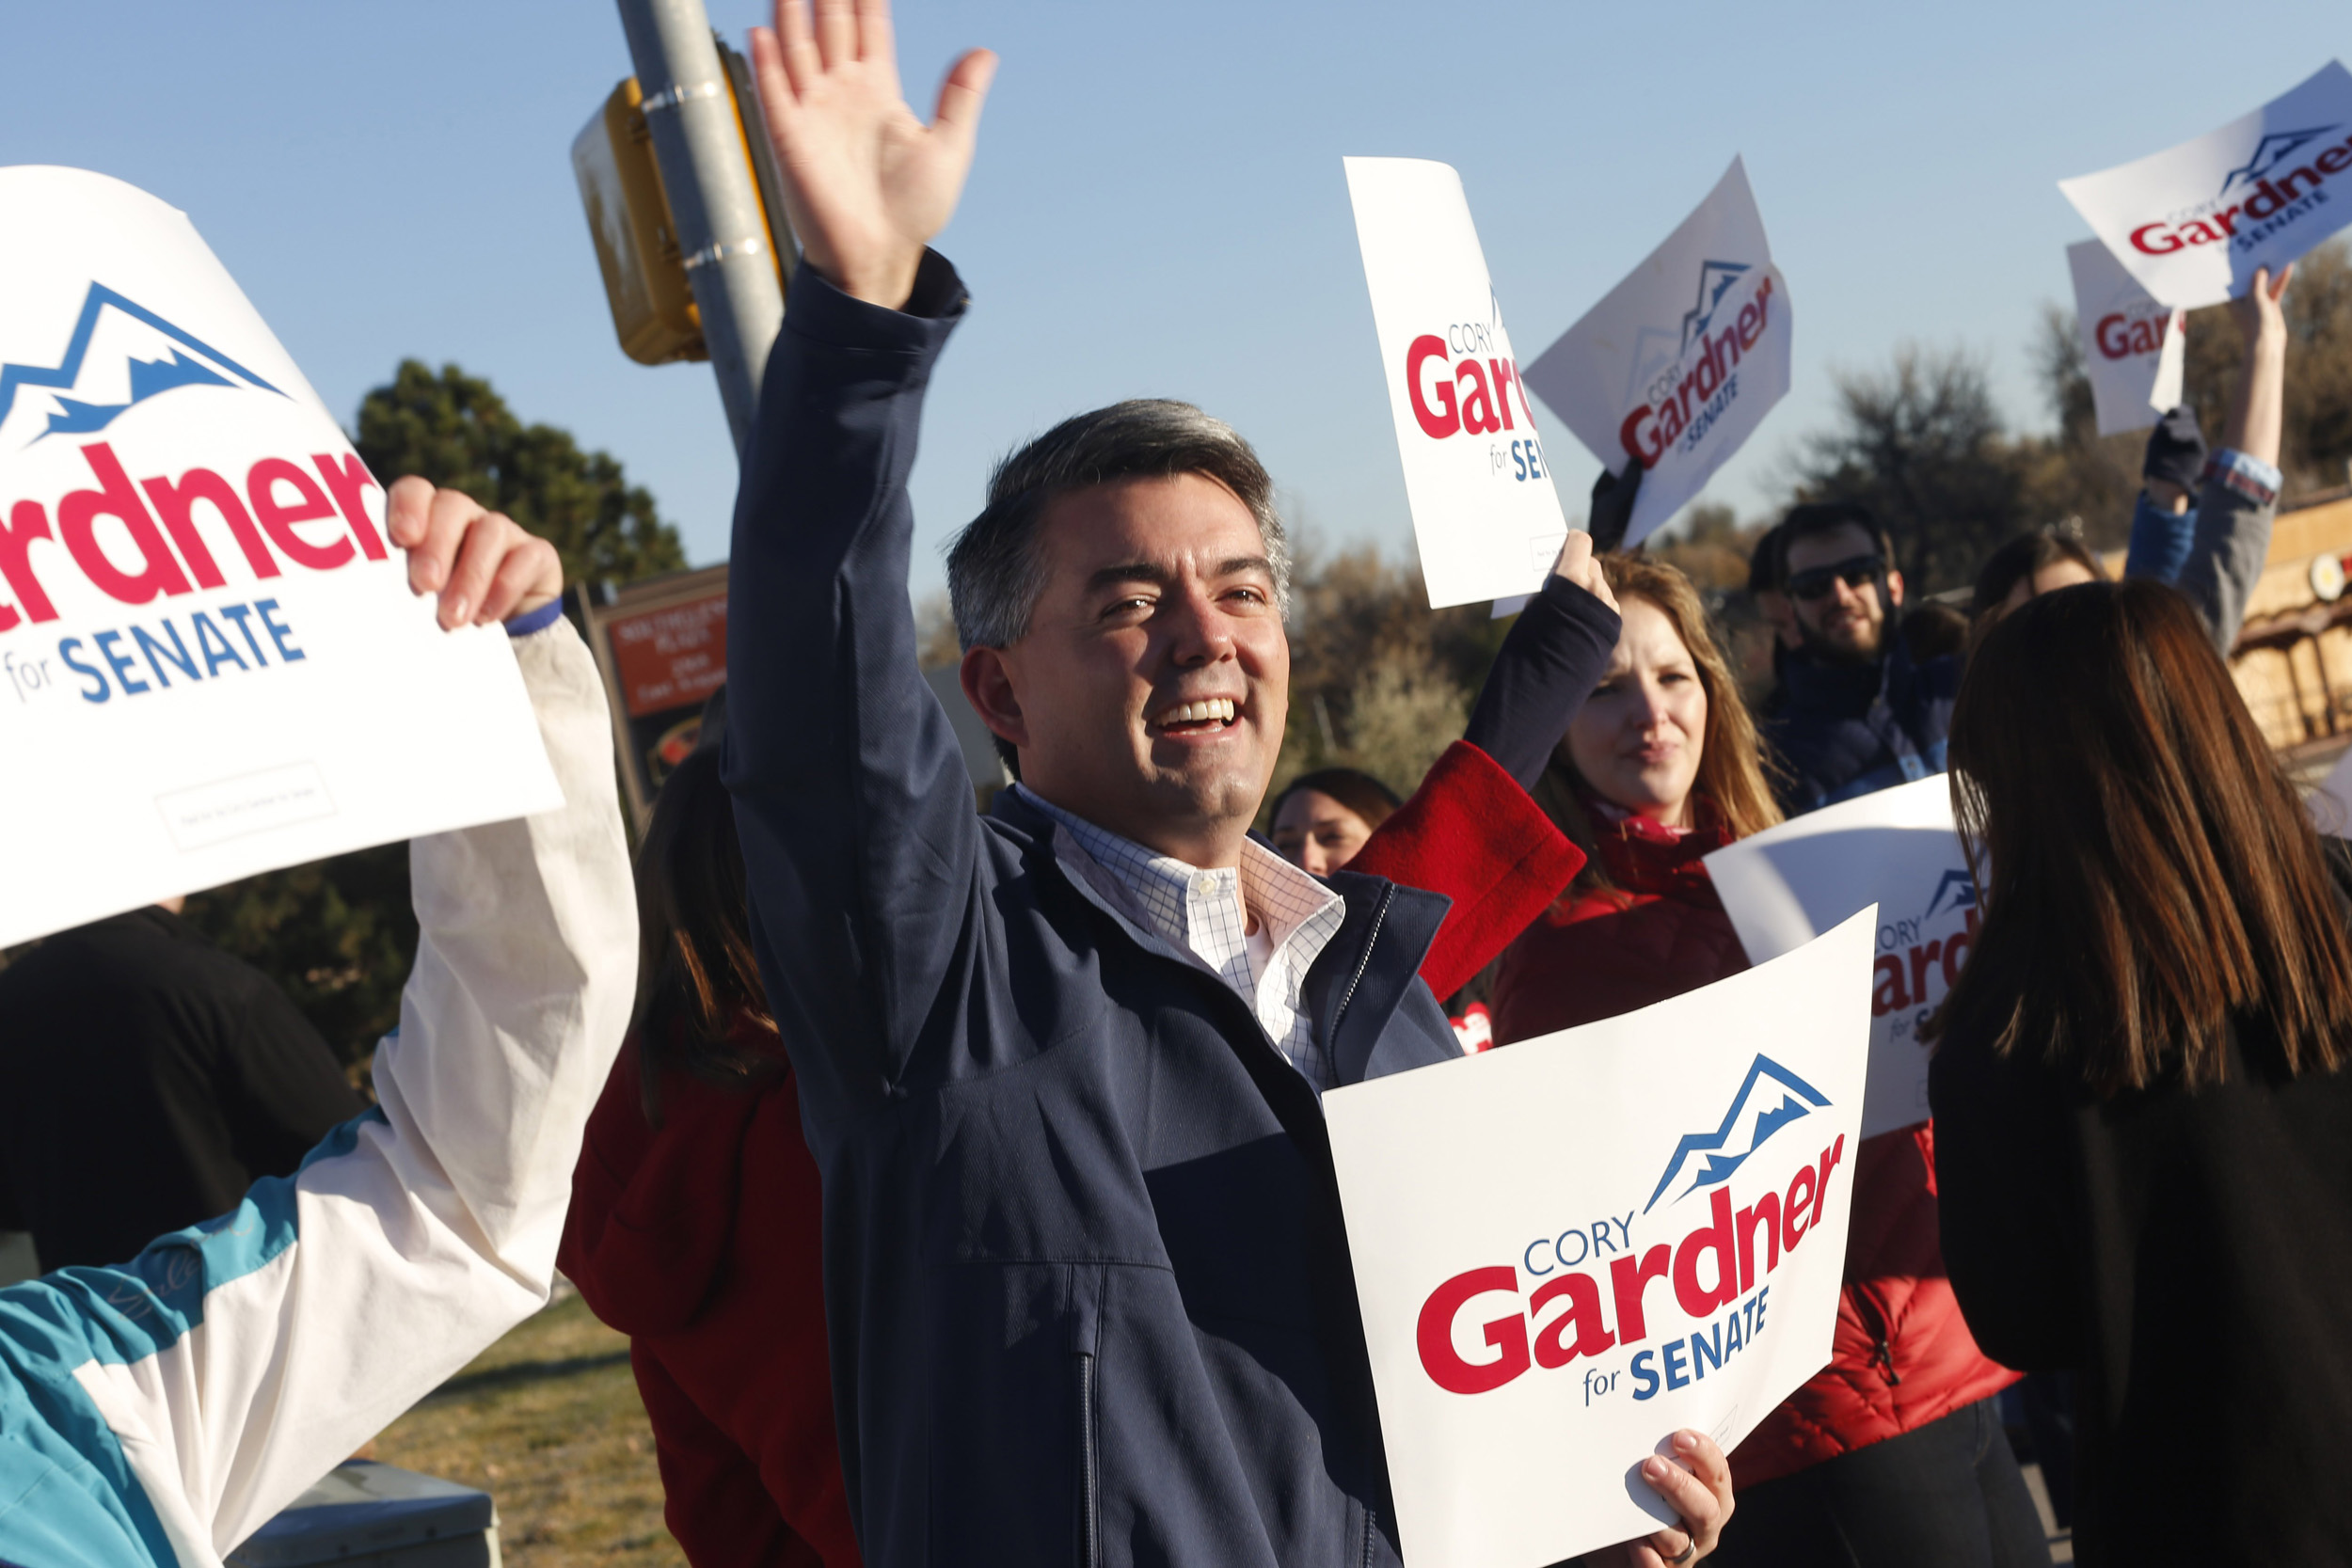 <b>Cory Gardner</b>                                   Gardner formerly served in the Colorado House of Representatives and U.S. House of Representatives. He beat incumbent Sen. Mark Udall.